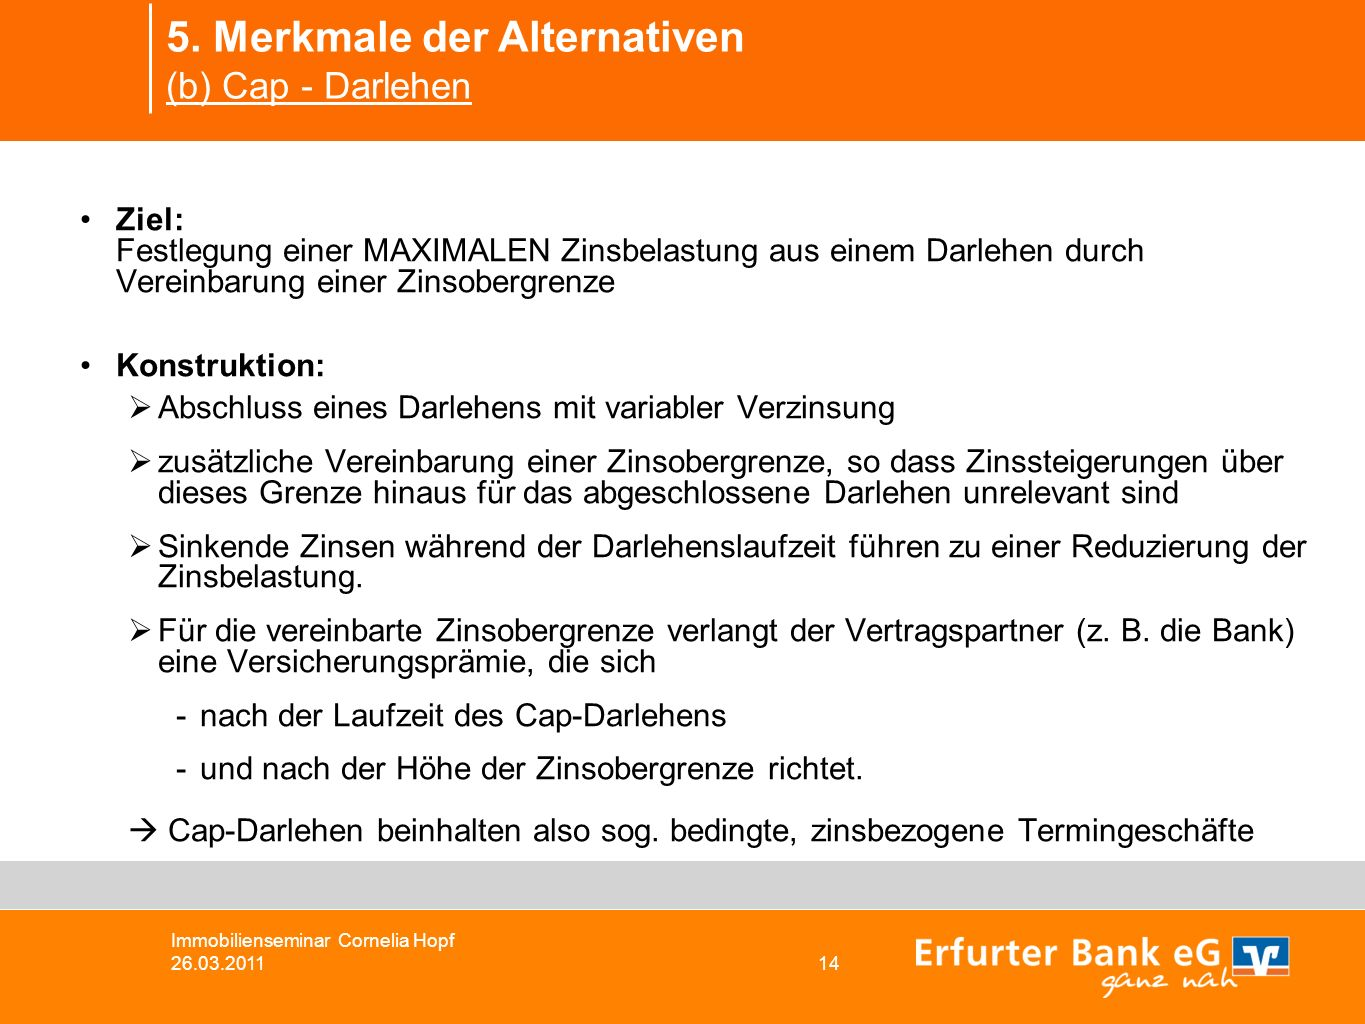 5. Merkmale der Alternativen